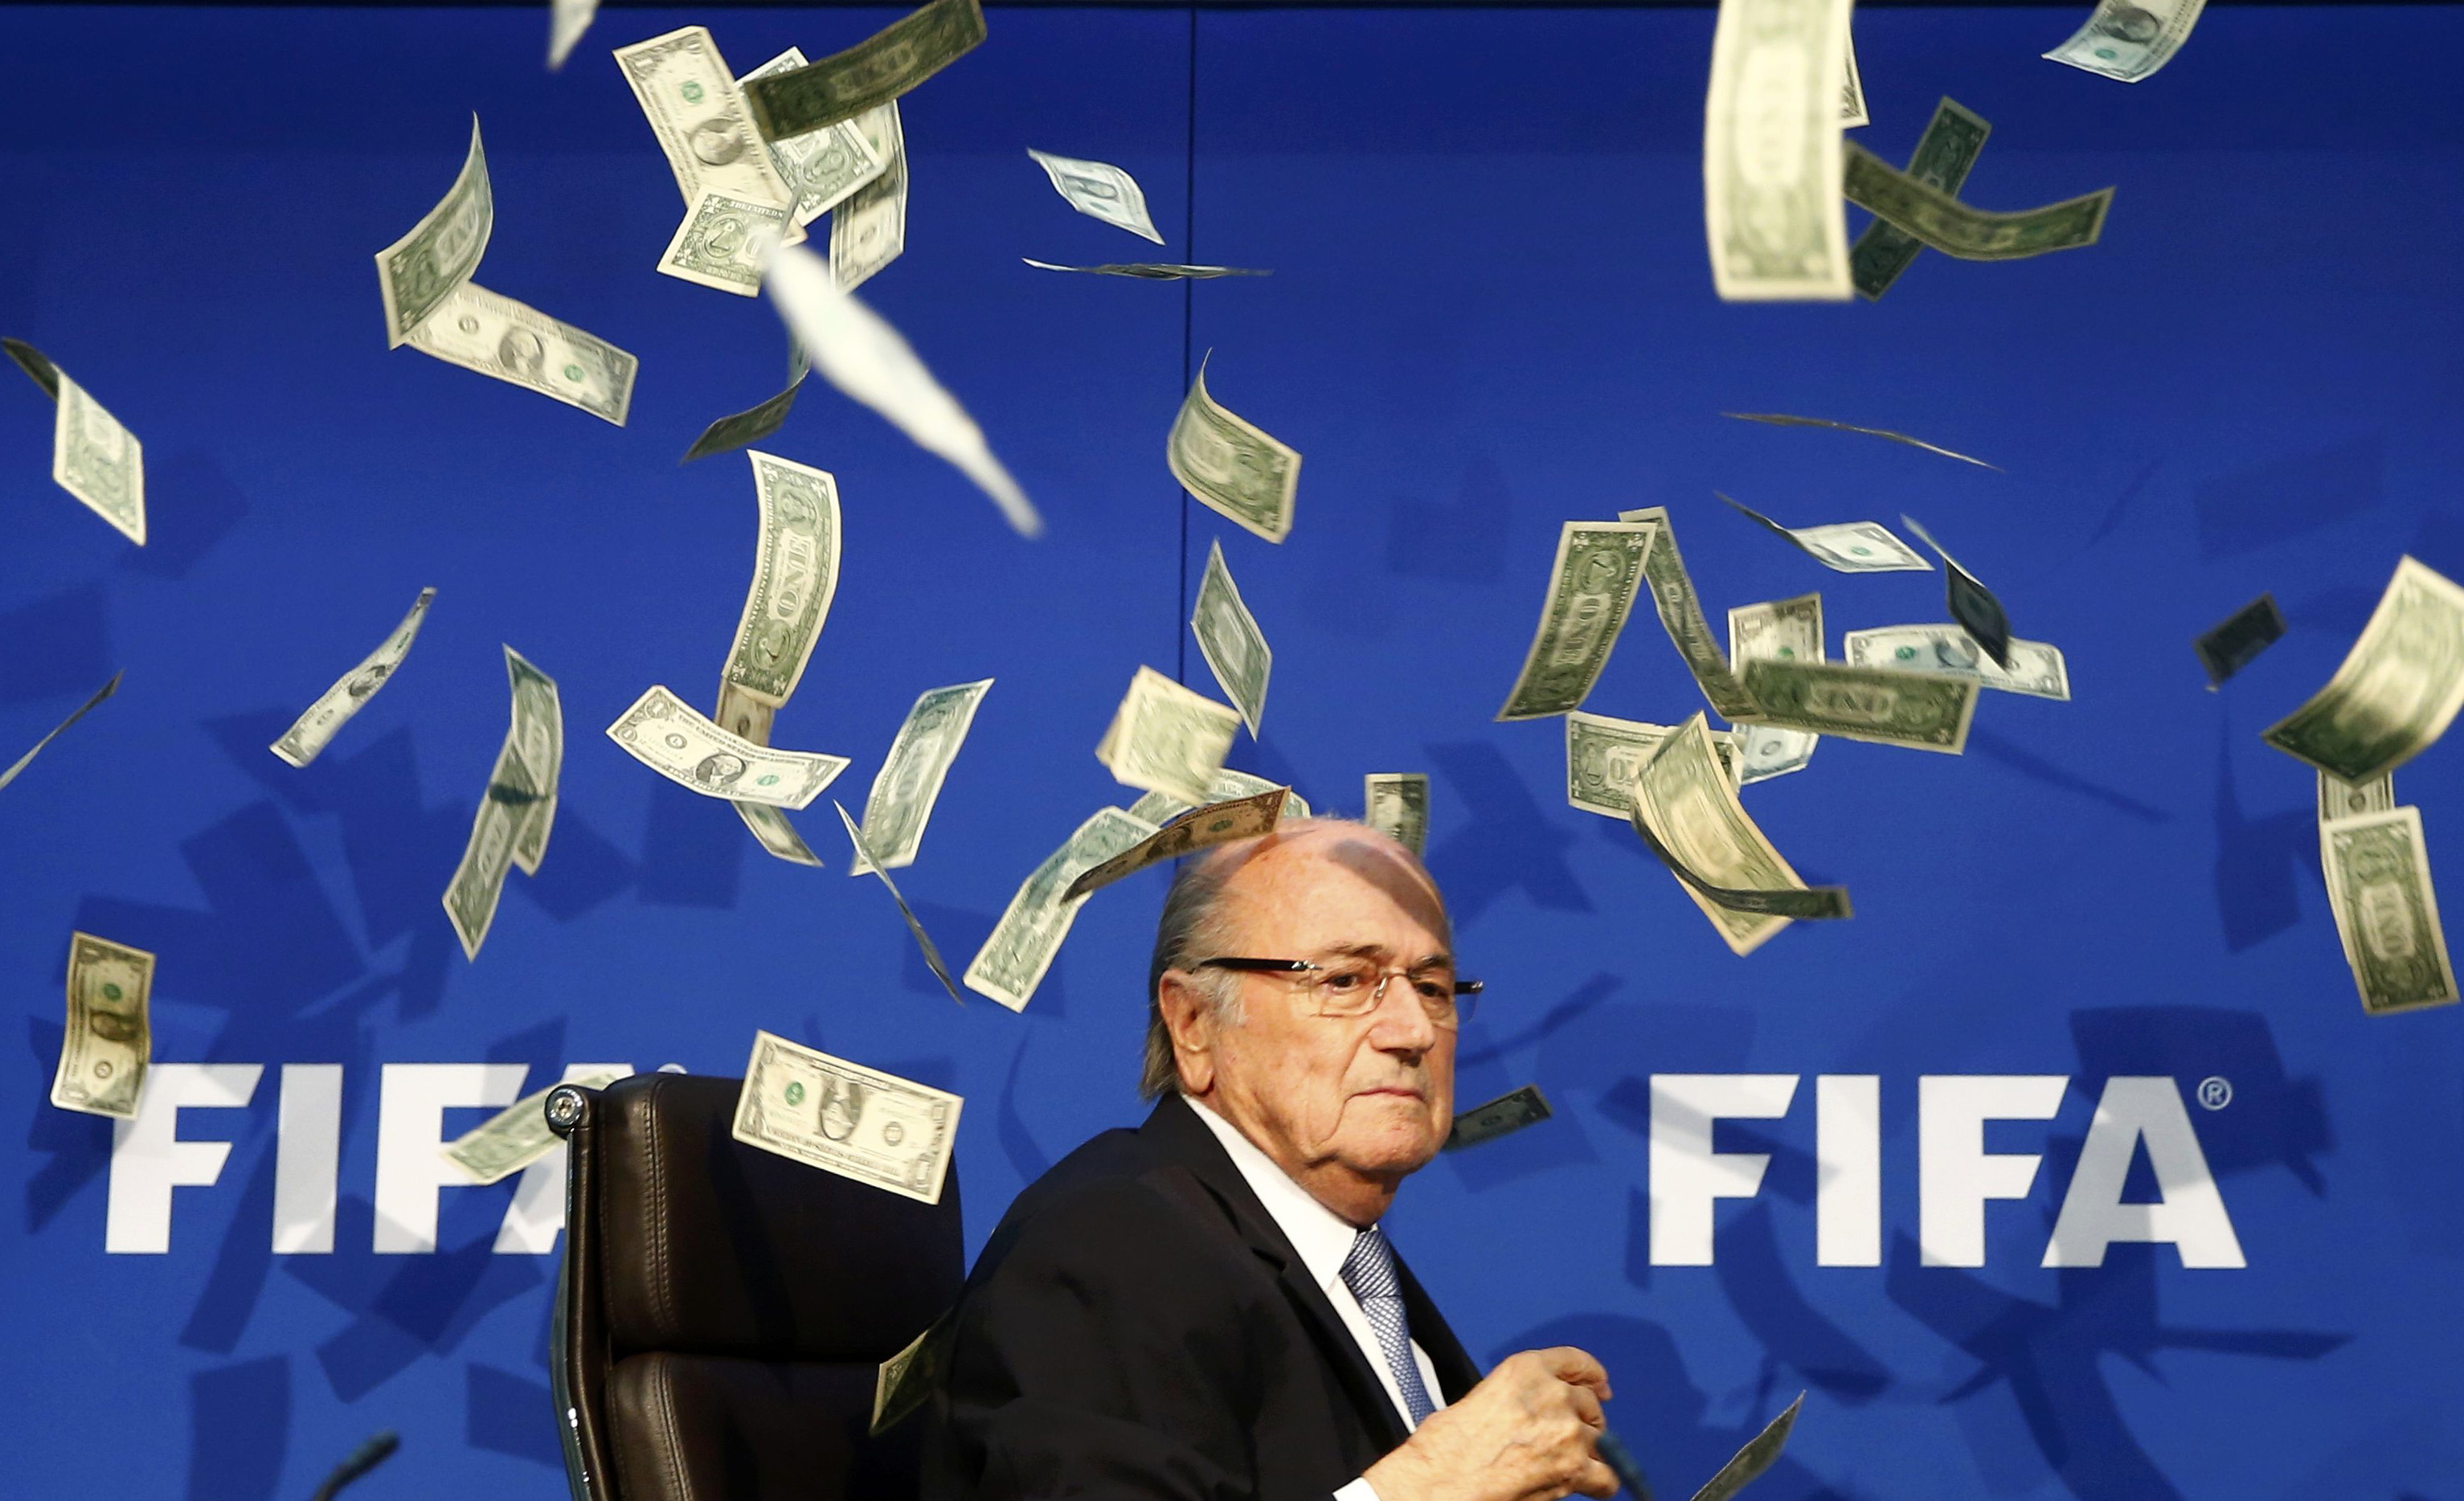 Banknotes are thrown at FIFA President Blatter as he arrives for a news conference after the Extraordinary FIFA Executive Committee Meeting at the FIFA headquarters in Zurich